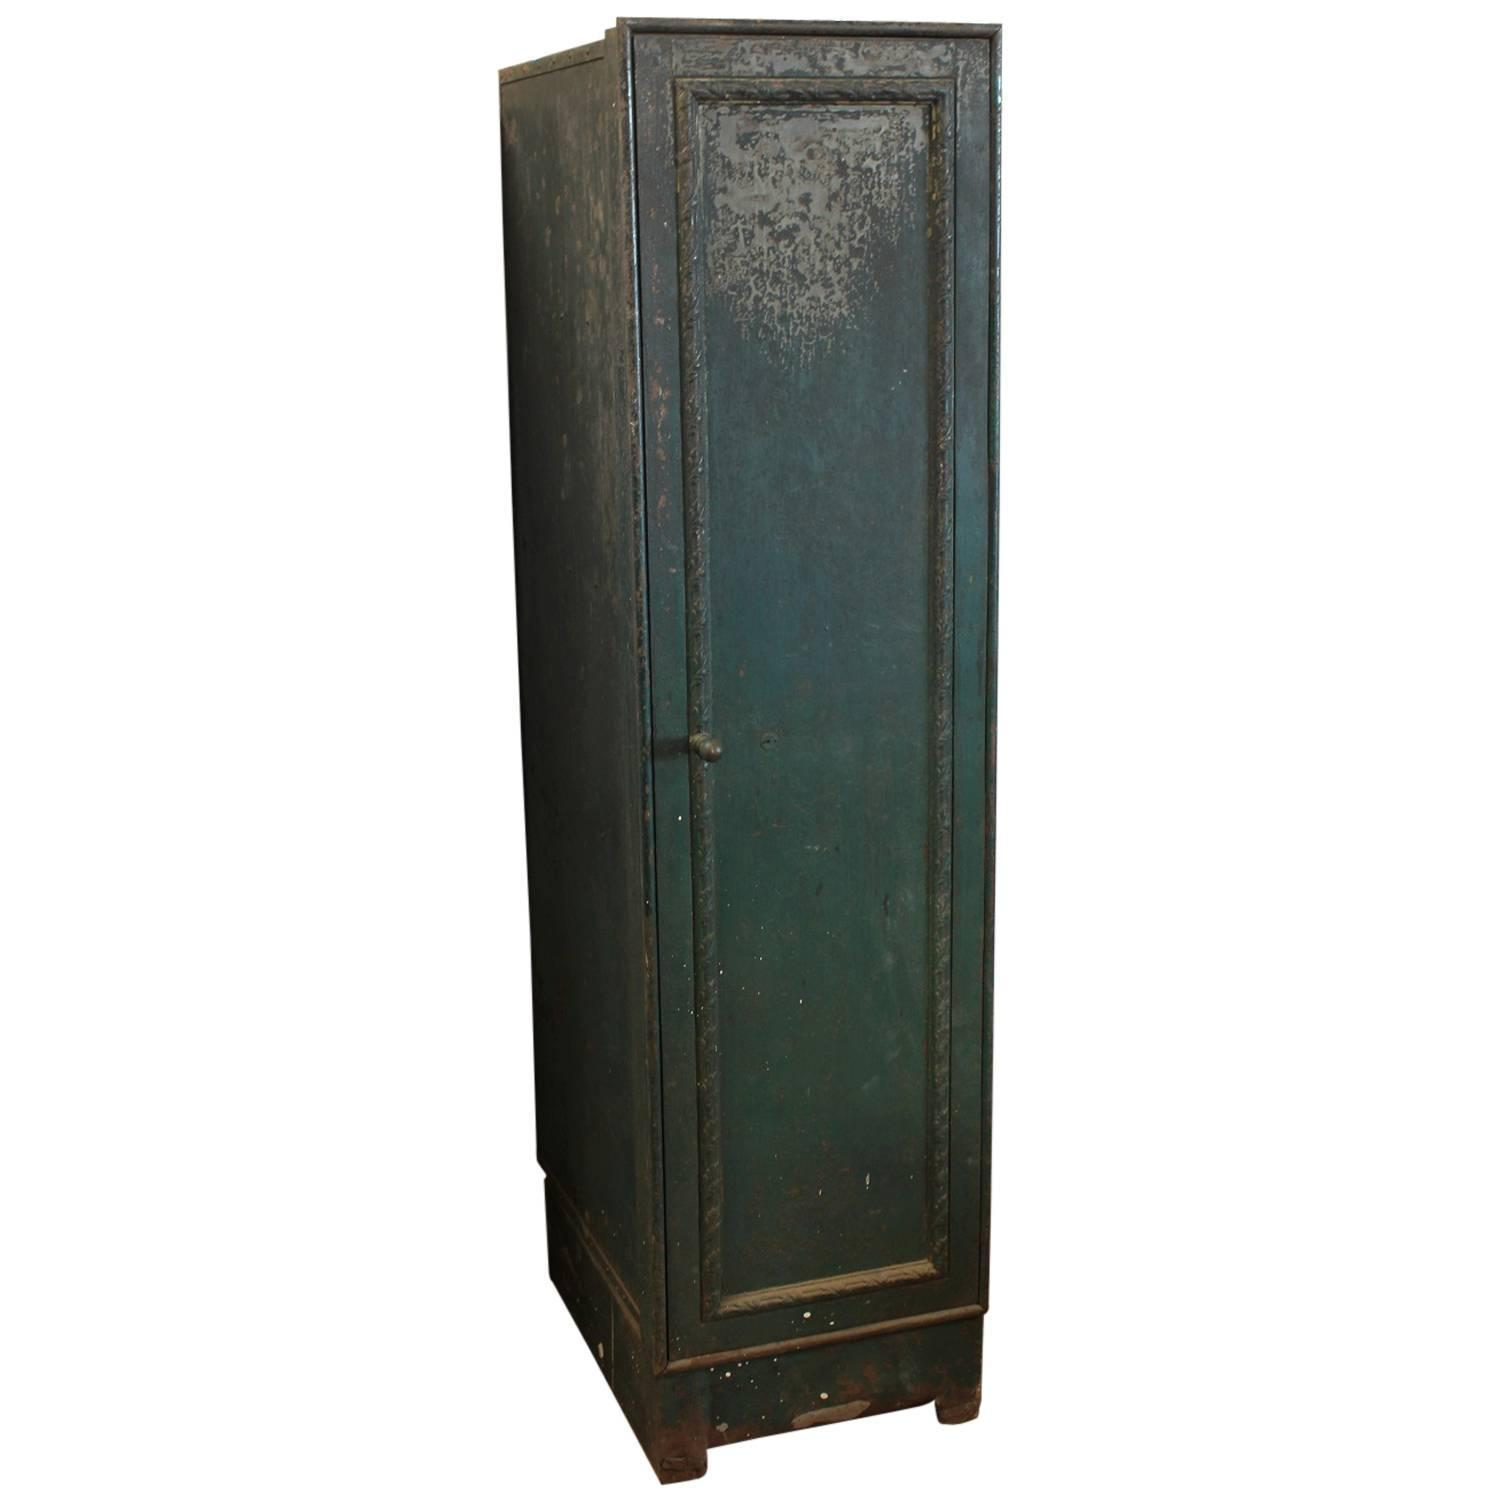 Gym Lockers For Sale >> Antique American Bank Decorative Metal Locker For Sale at 1stdibs